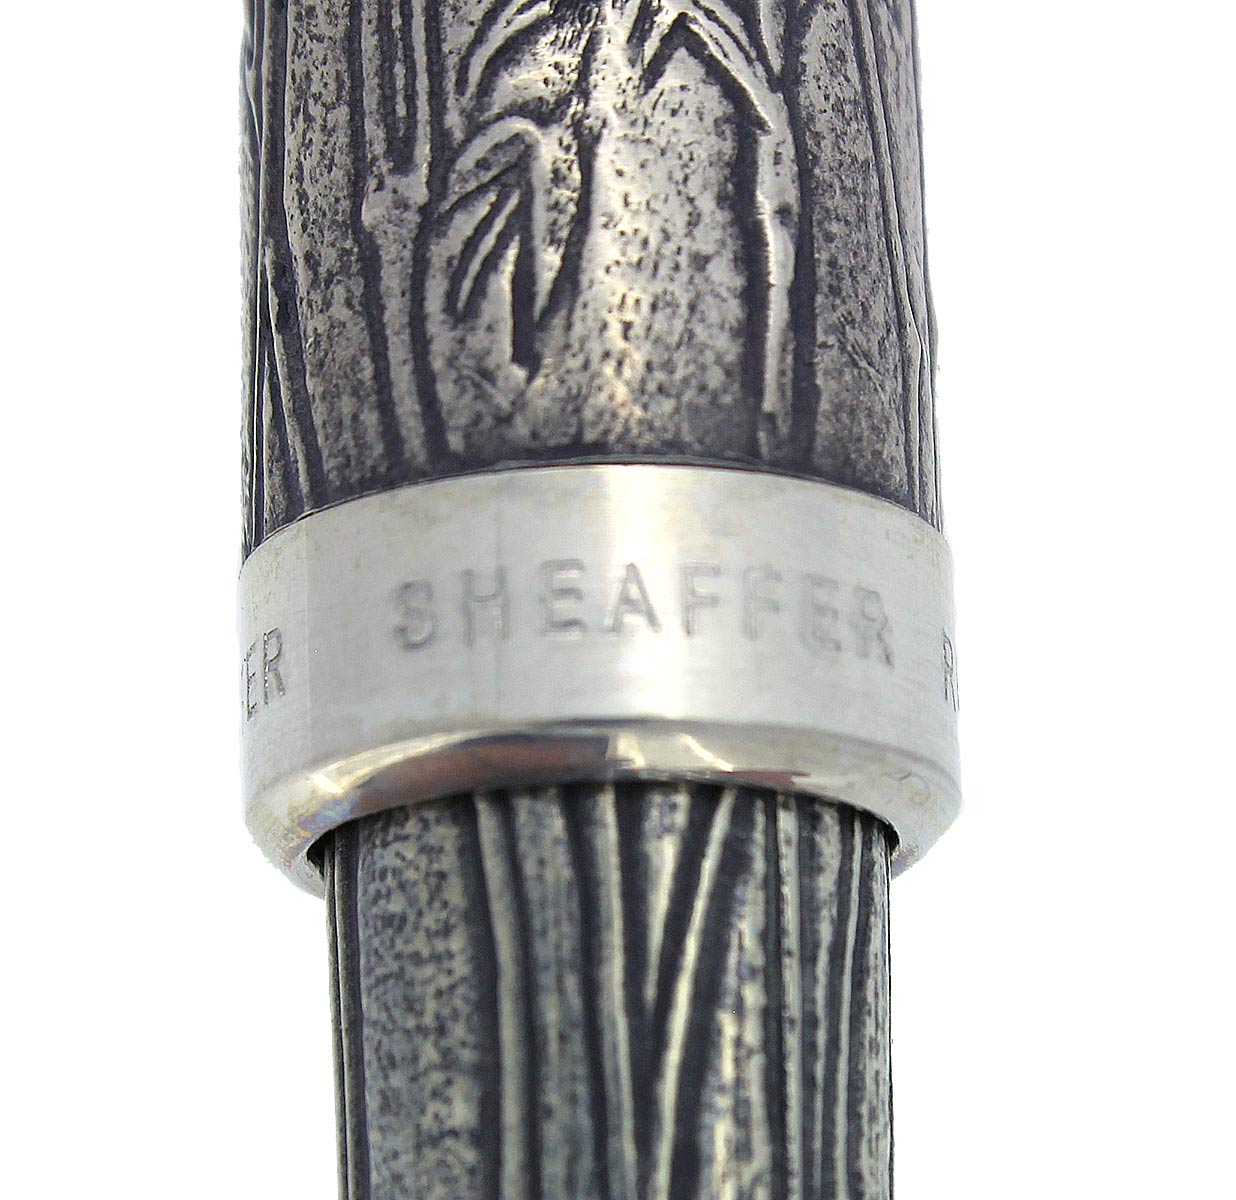 SHEAFFER ASIA SERIES BAMBOO FOUNTAIN PEN NEW IN BOX 18K FINE NIB MINT CONDITION OFFERED BY ANTIQUE DIGGER